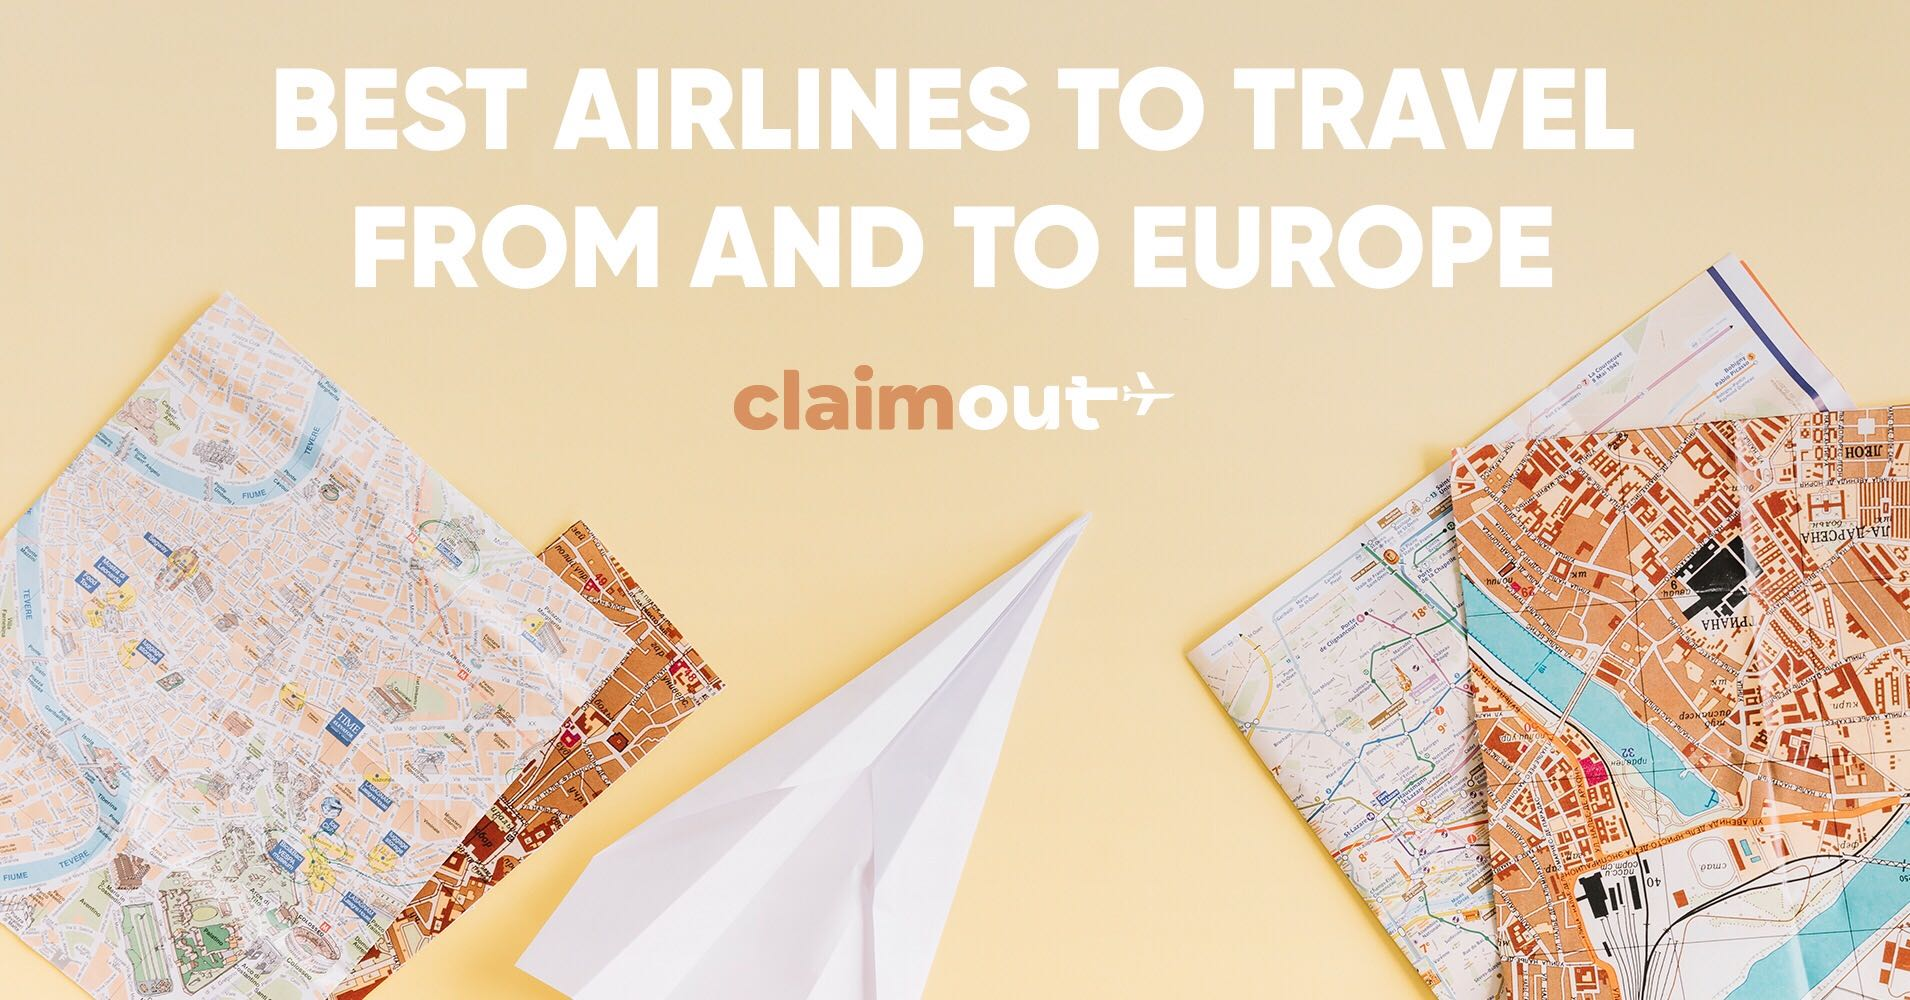 The Best airlines to travel FROM and TO Europe